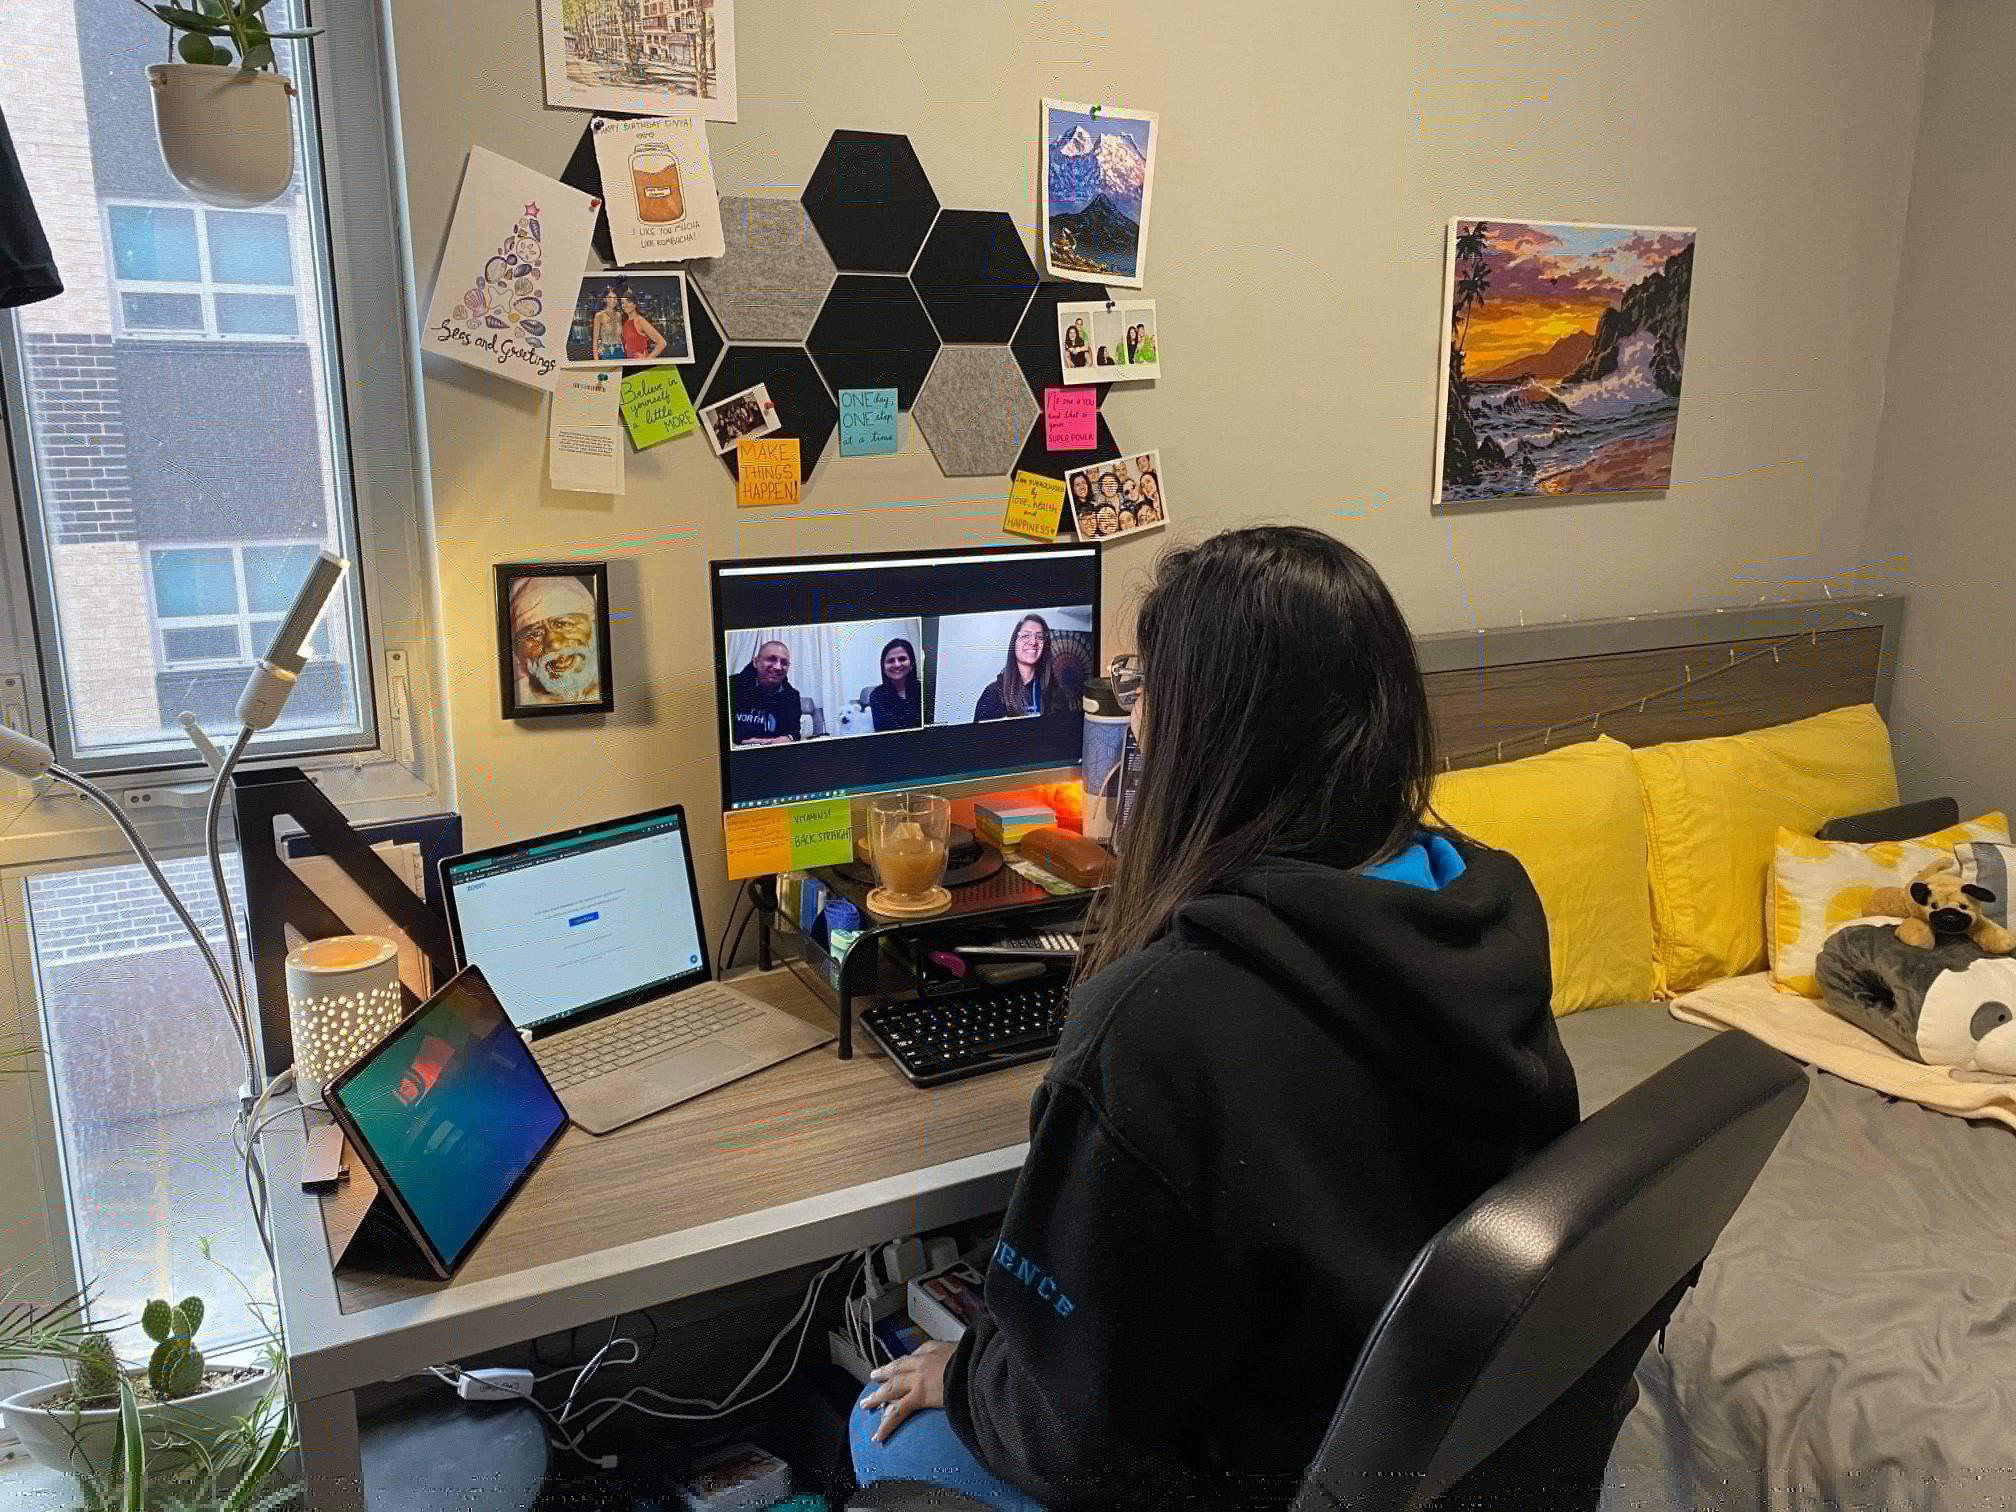 Divya sitting at a computer chatting with family on a video call